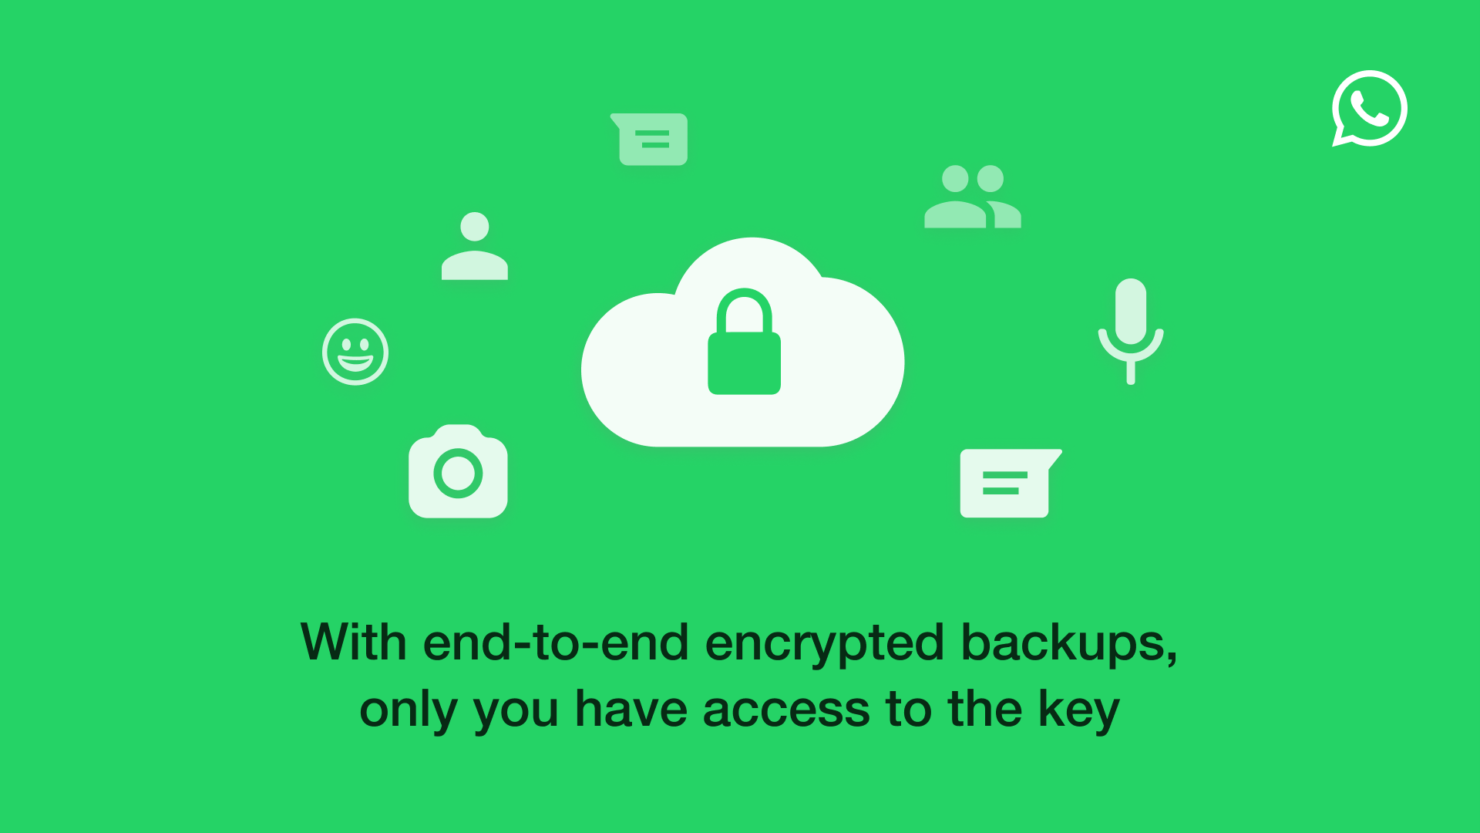 WhatsApp is Adding End-to-End Encryption for Google Drive and iCloud Backups